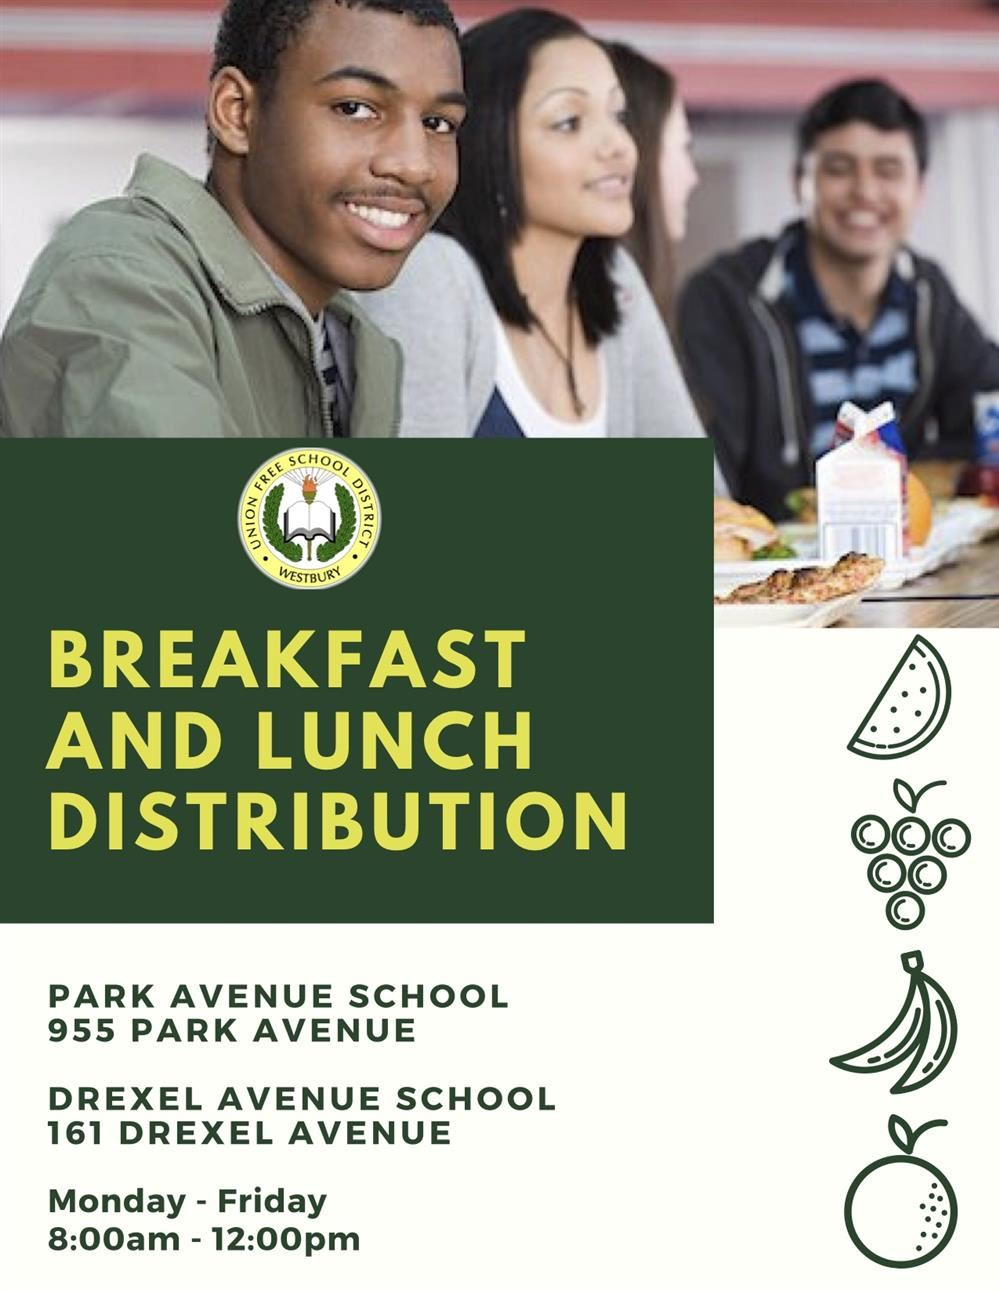 Food Distribution at PARK AVENUE and DREXEL AVENUE SCHOOLS